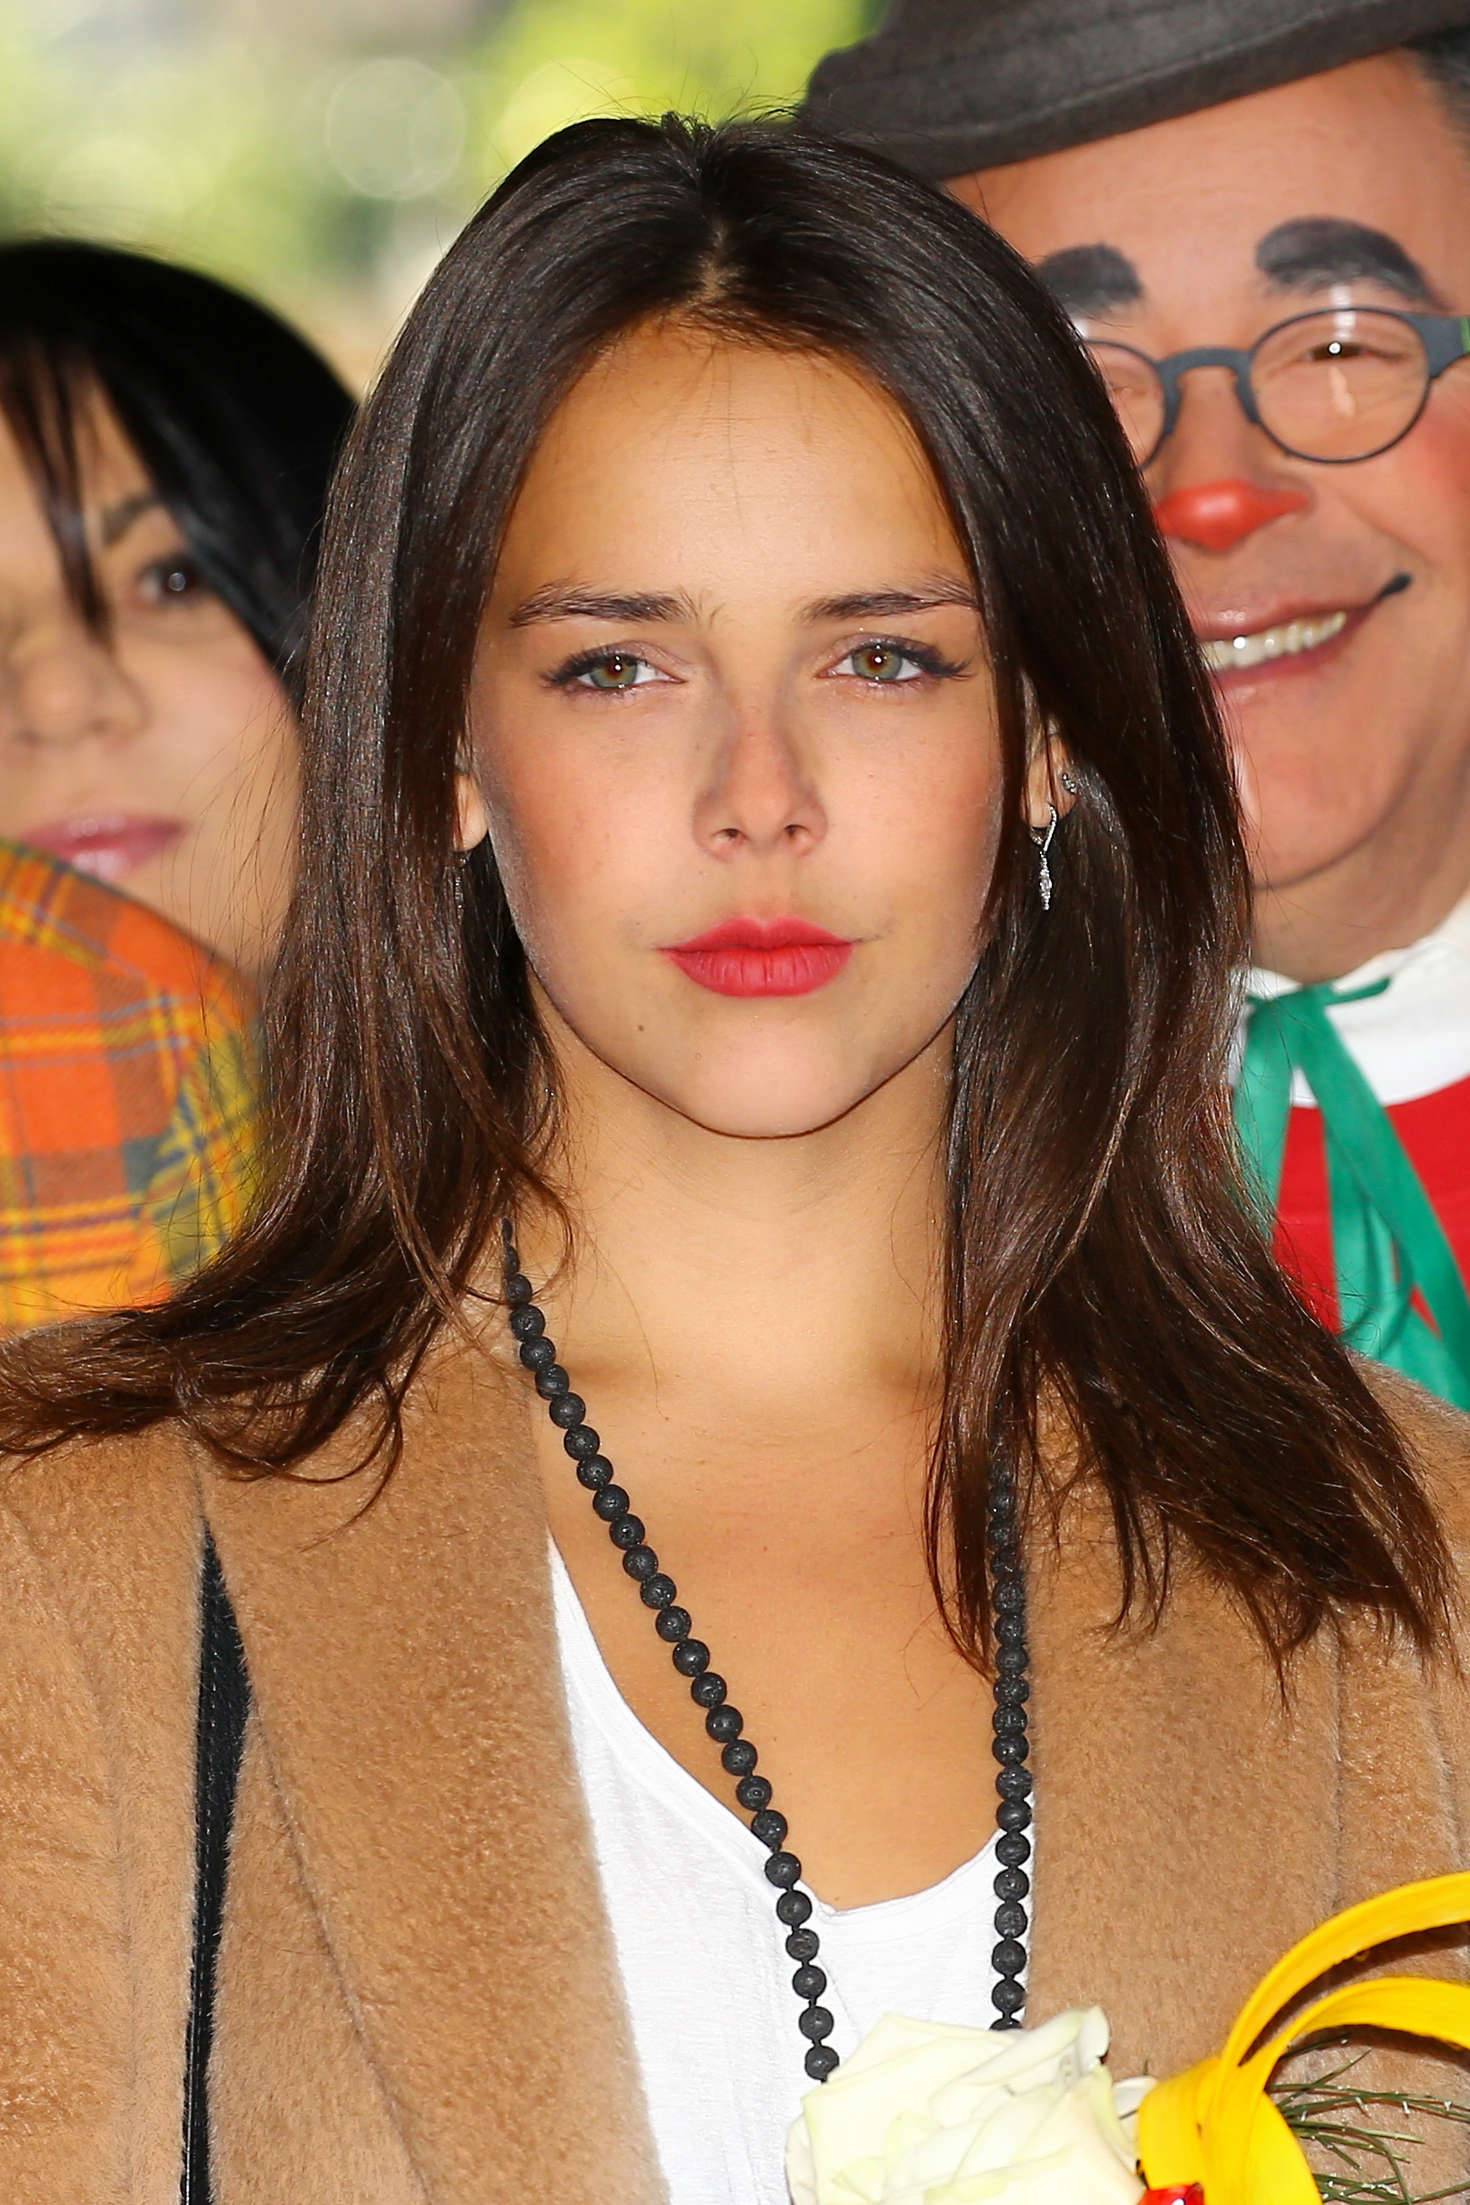 Pauline Ducruet Arrives at the Monte-Carlo Circus Festival